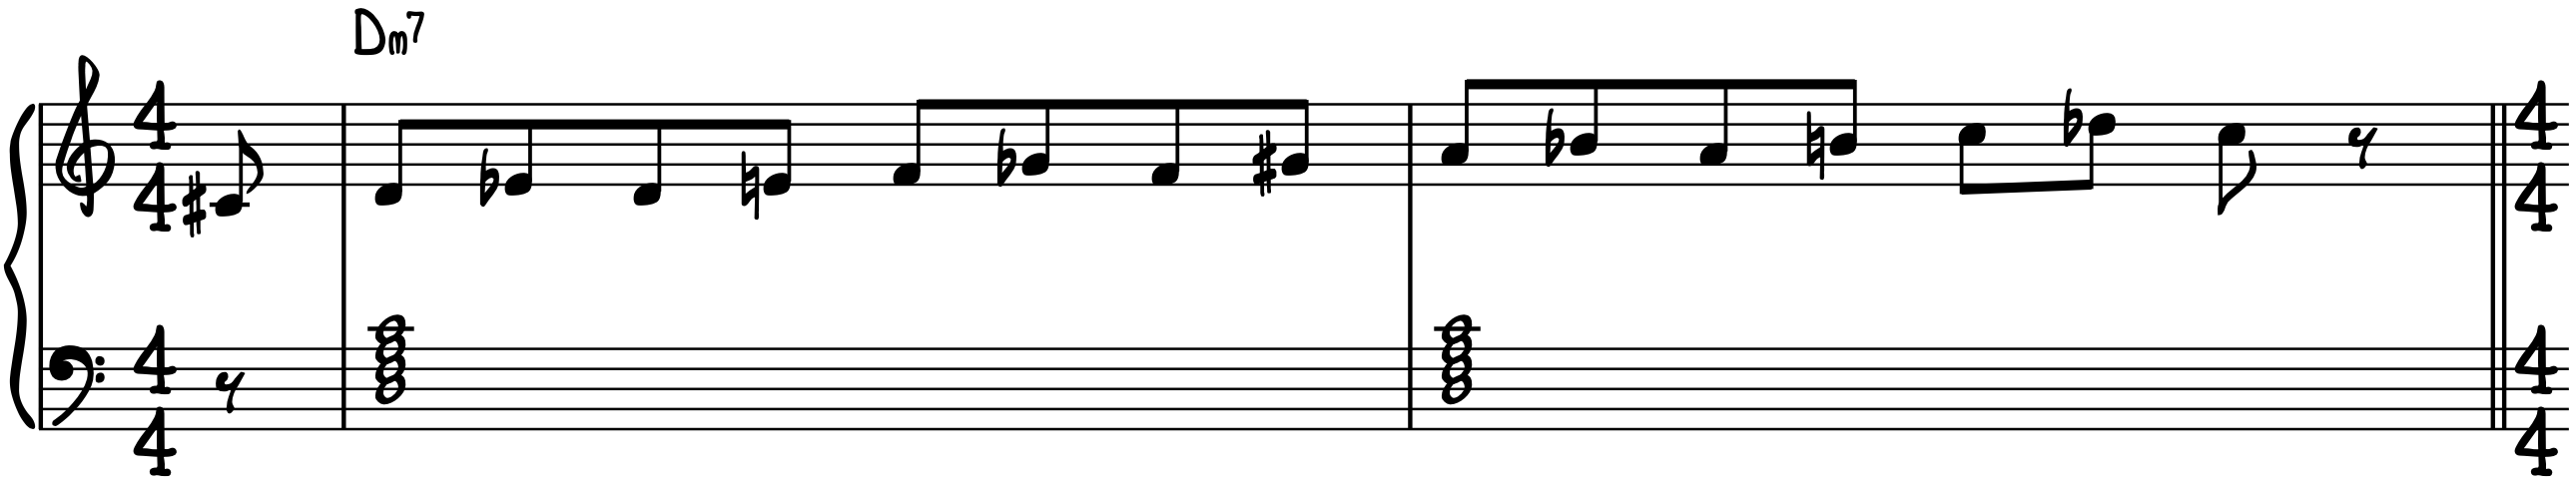 D Minor 7 Exercise